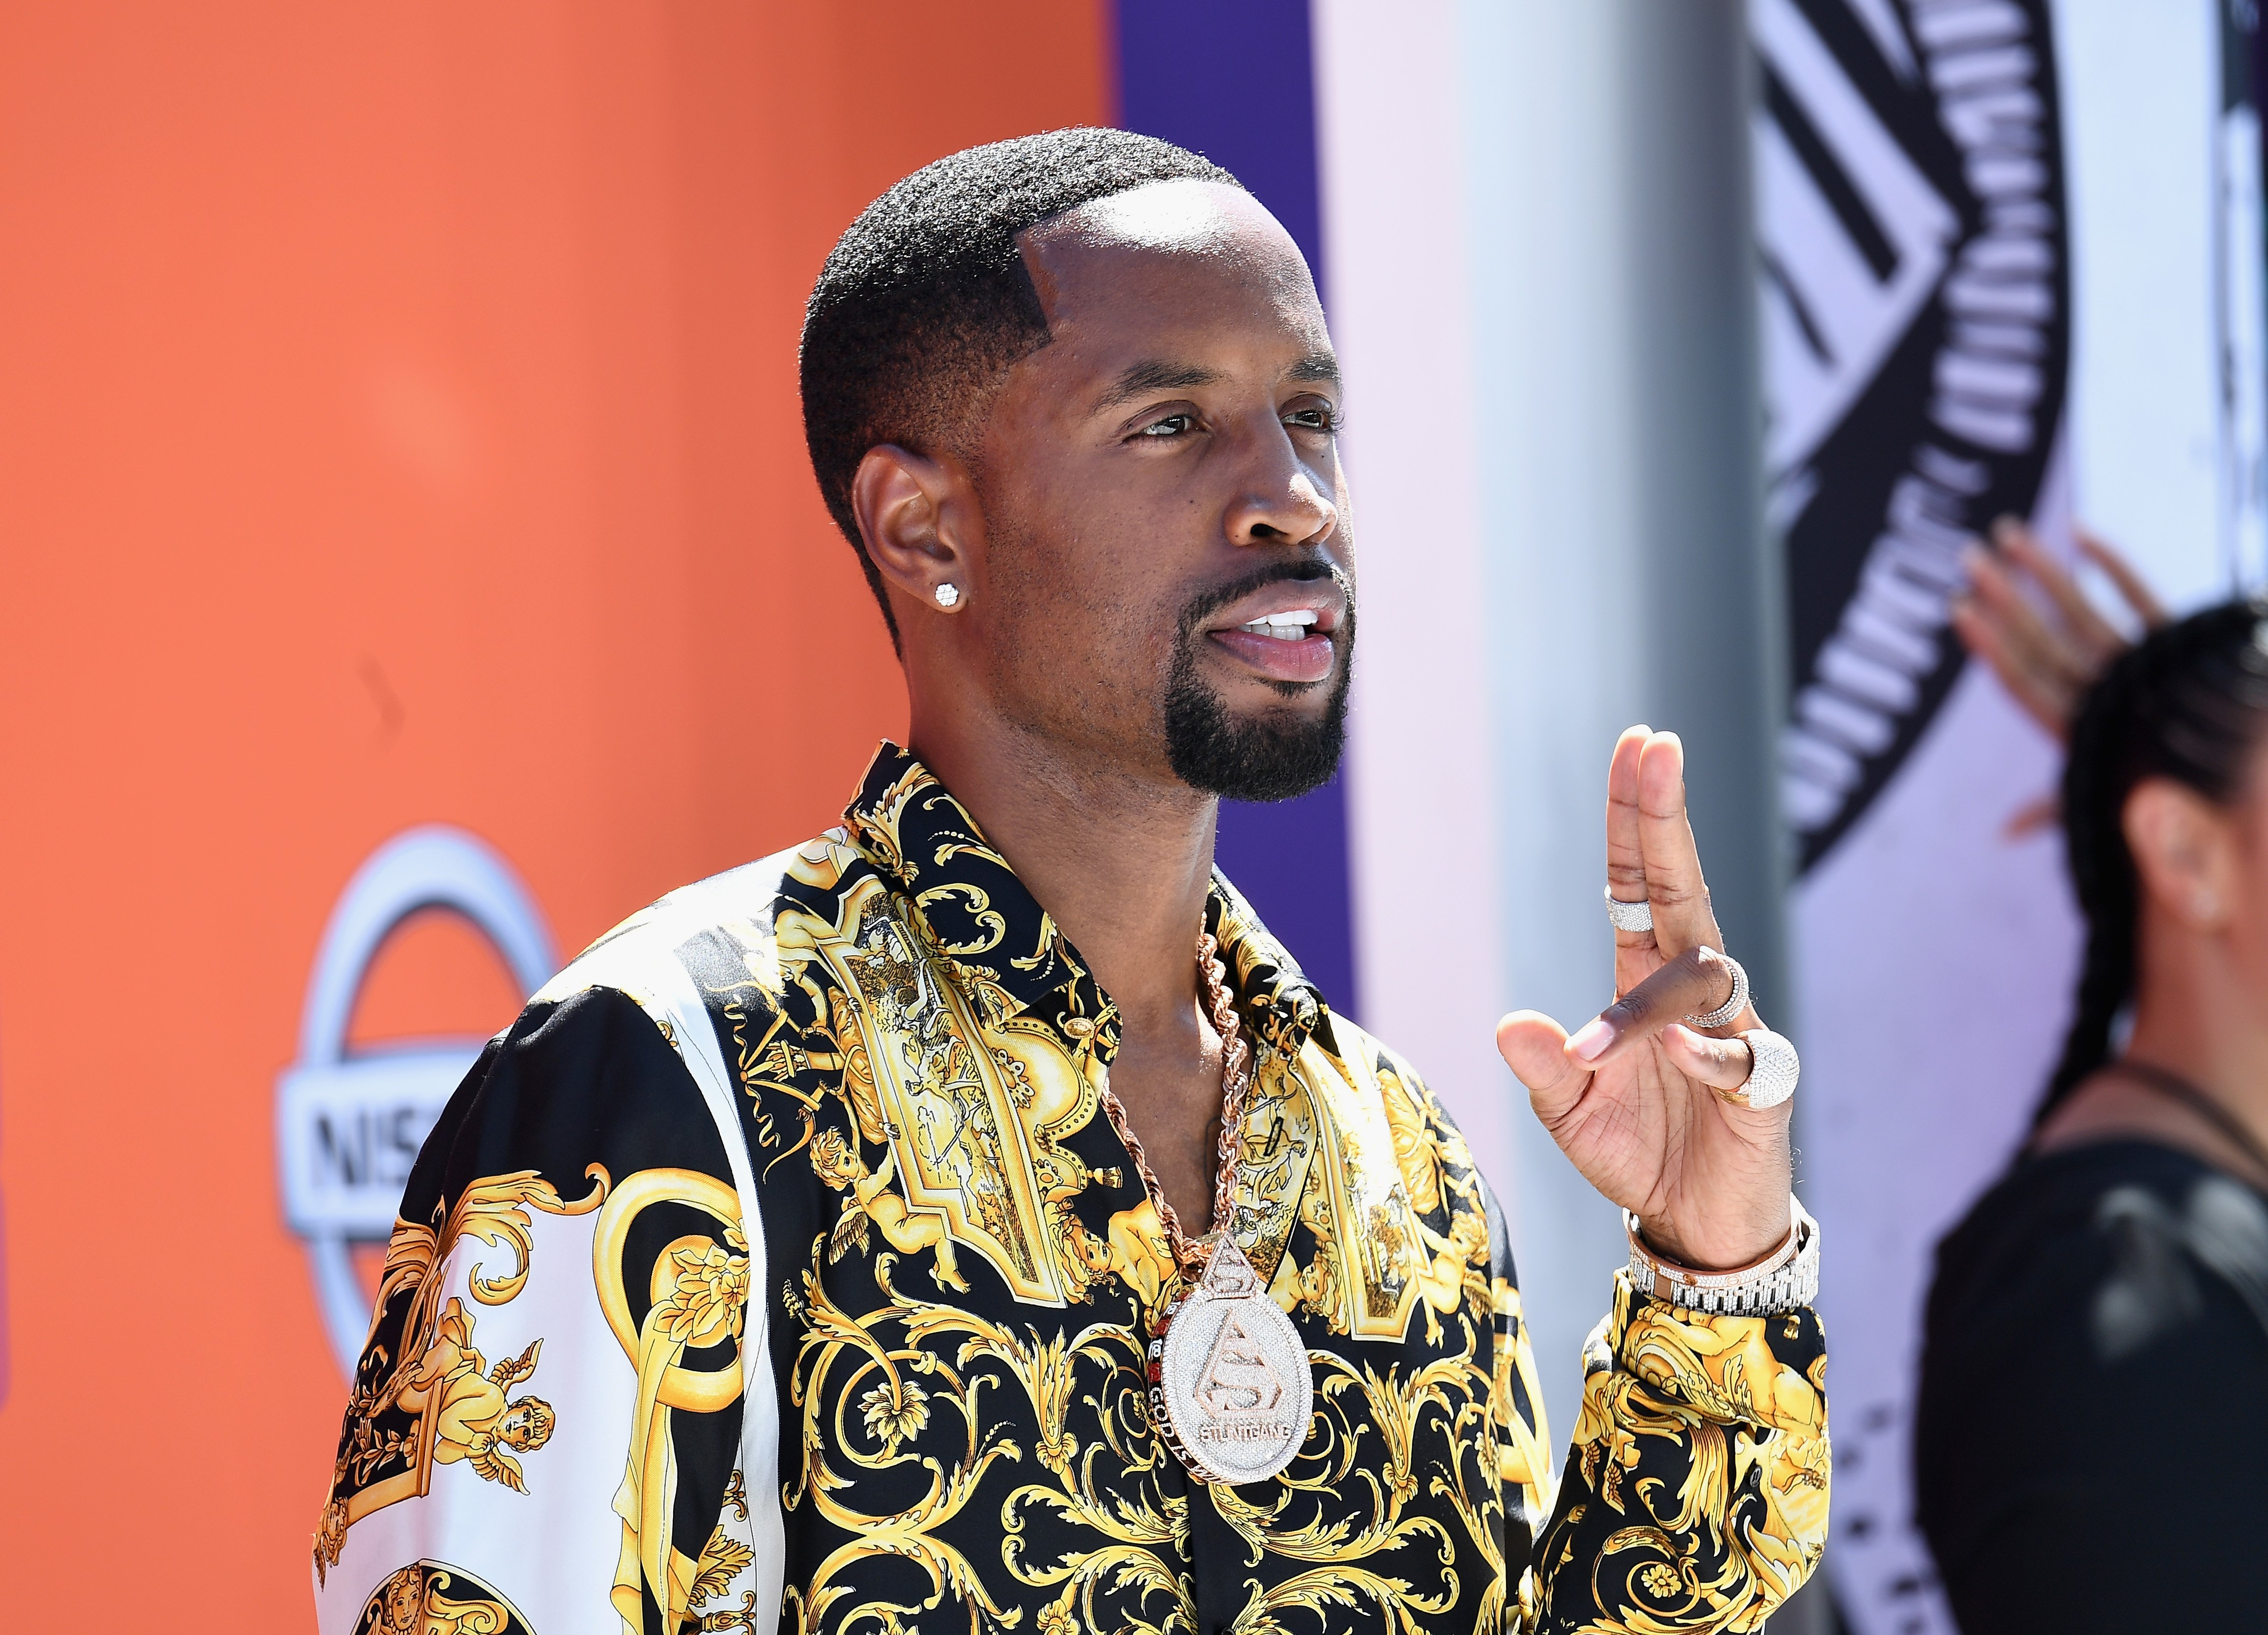 Safaree at the 2018 BET Awards in Los Angeles, California on June 24, 2018.   Photo: Getty Images